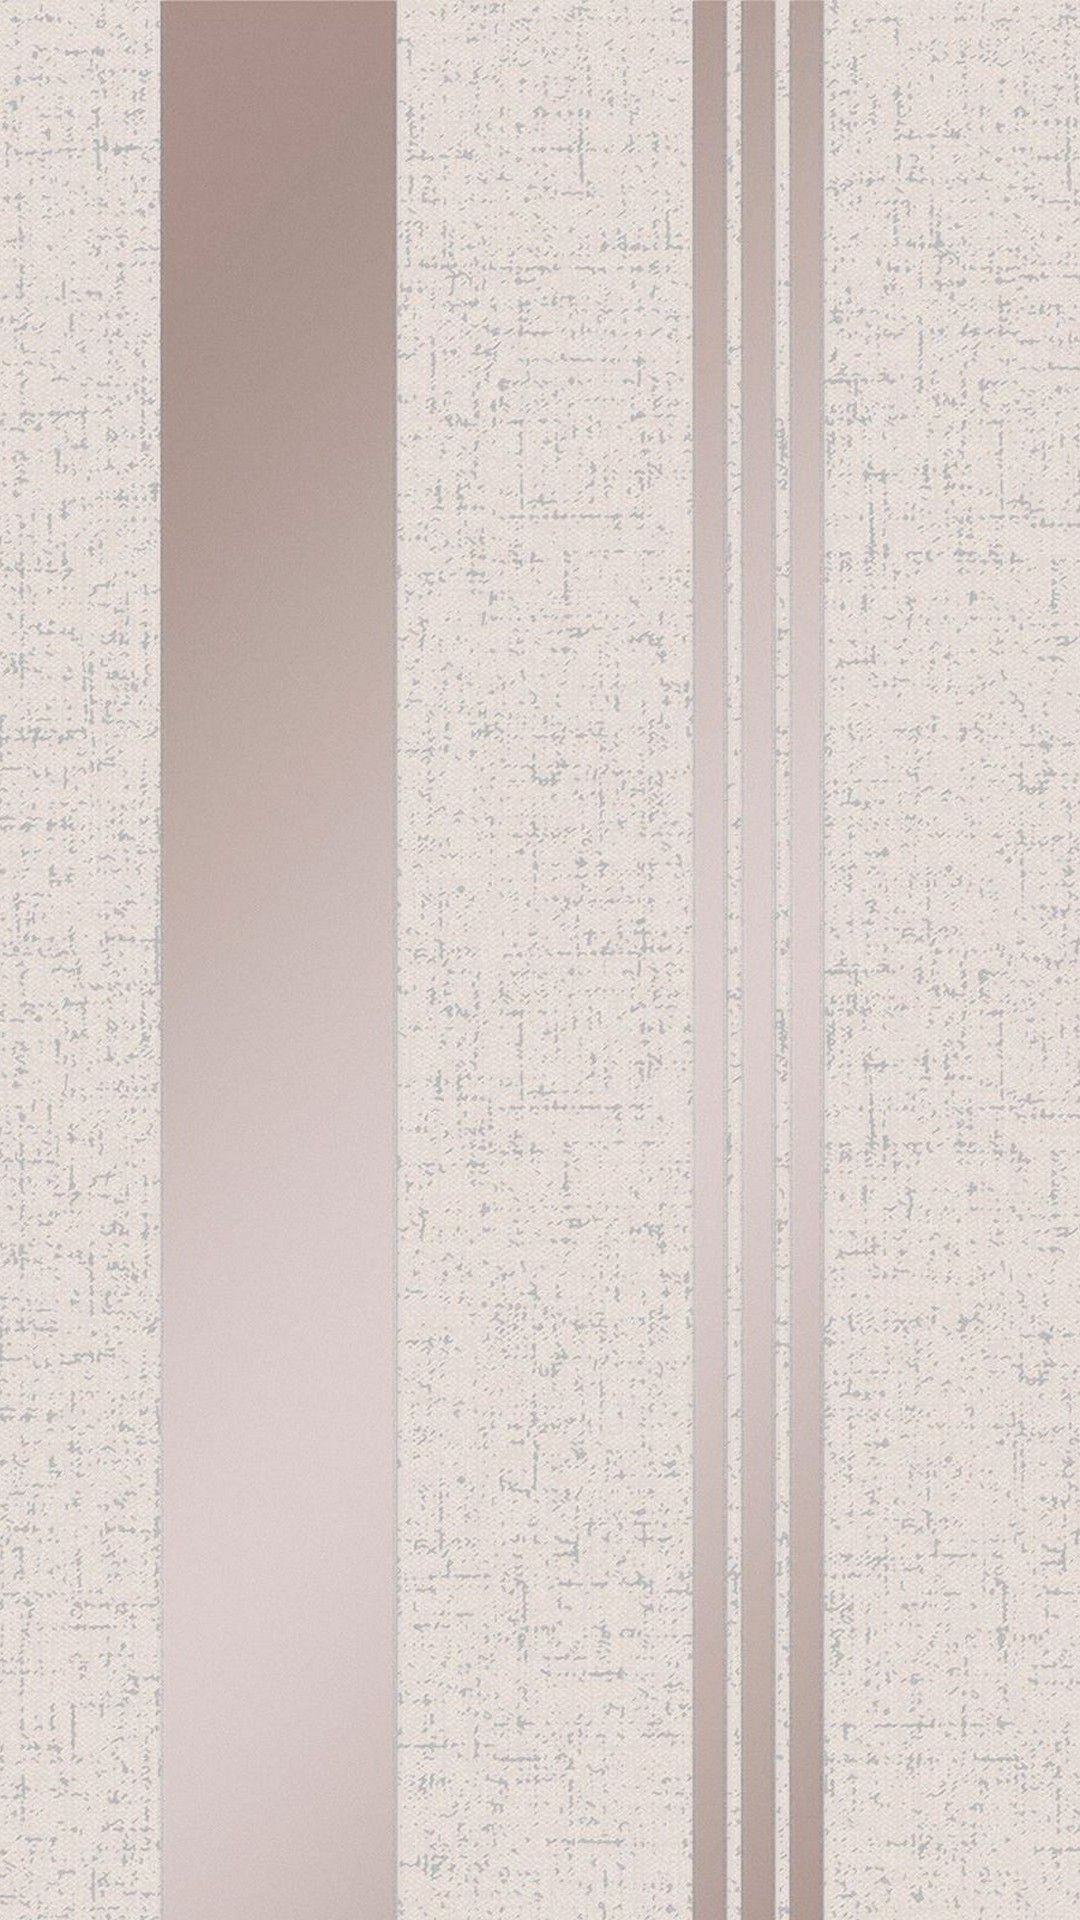 QUARTZ STRIPE WALLPAPER SILVER FINE DECOR FD41967 GLITTER